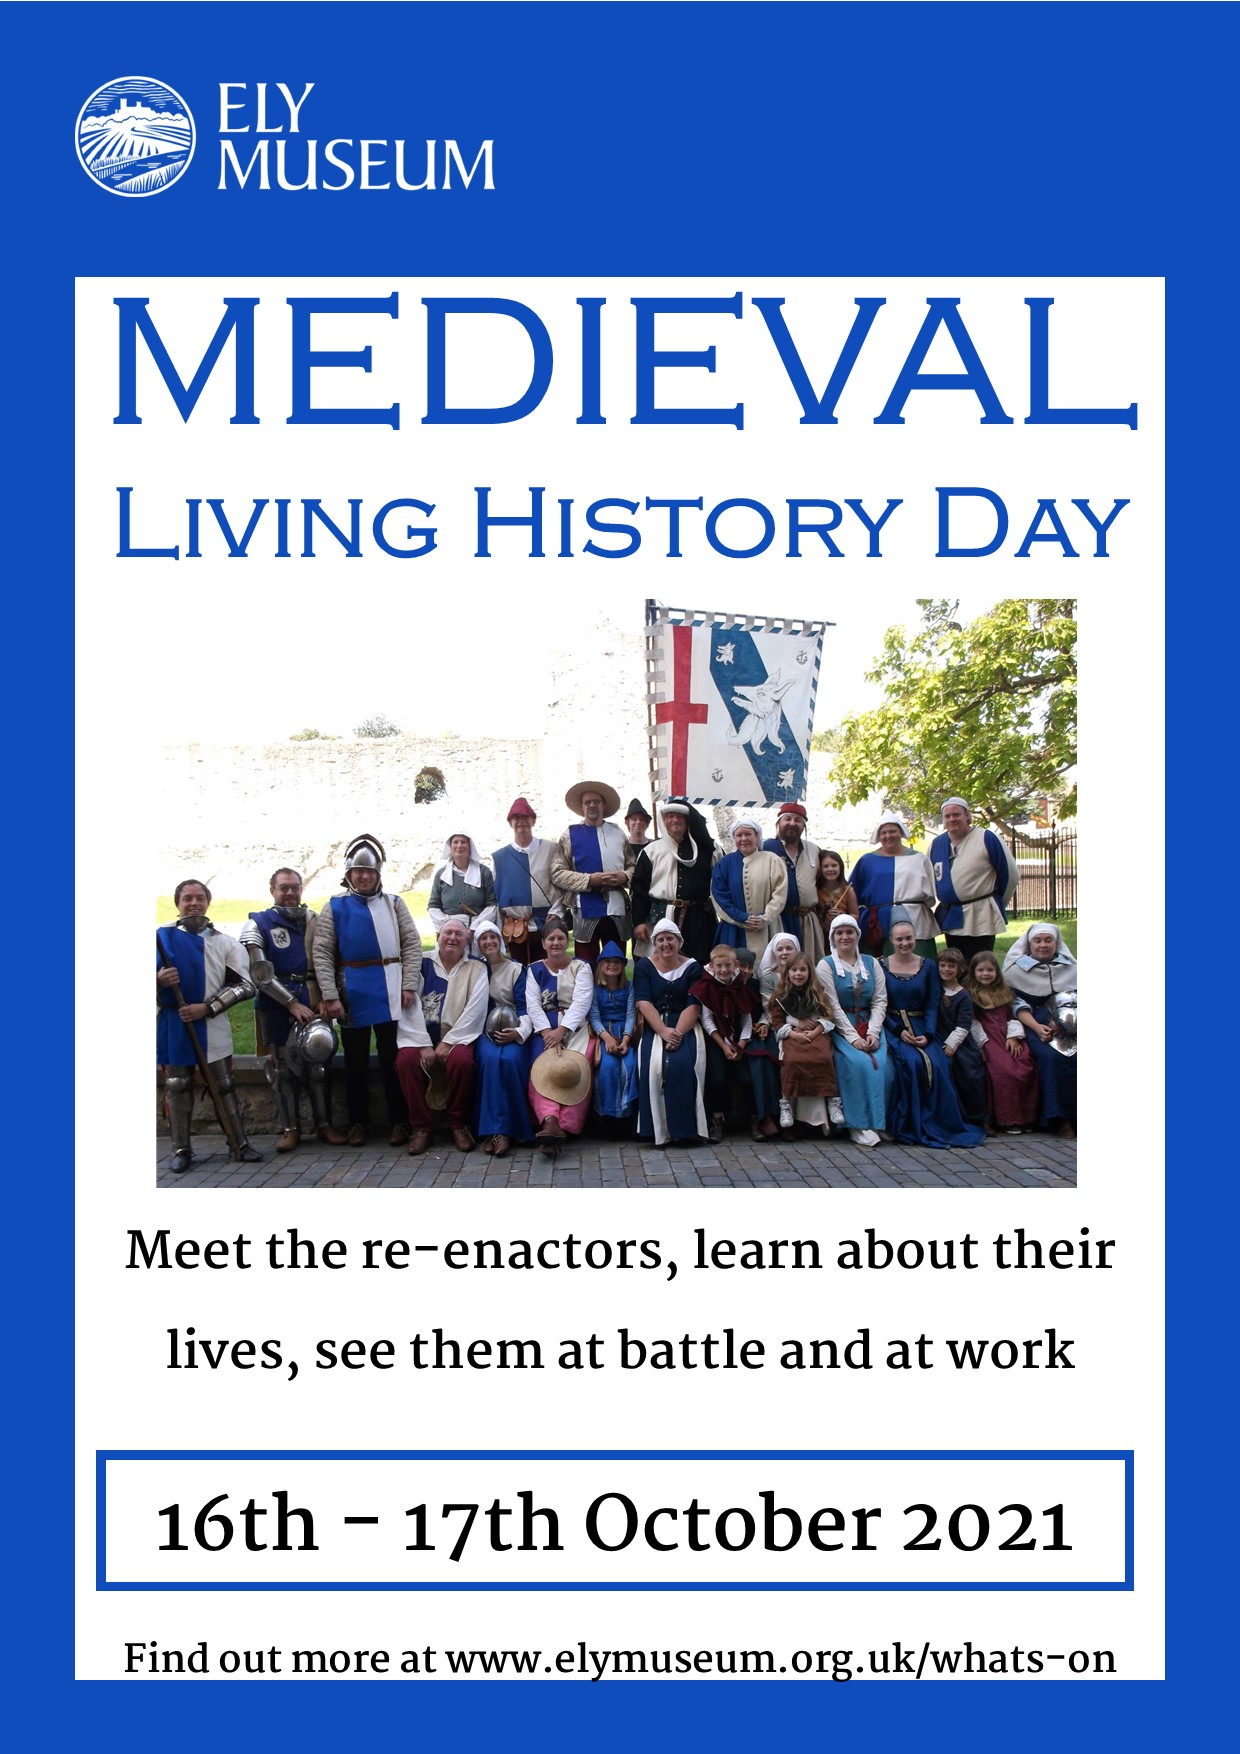 Medieval Living History Day at Ely Museum